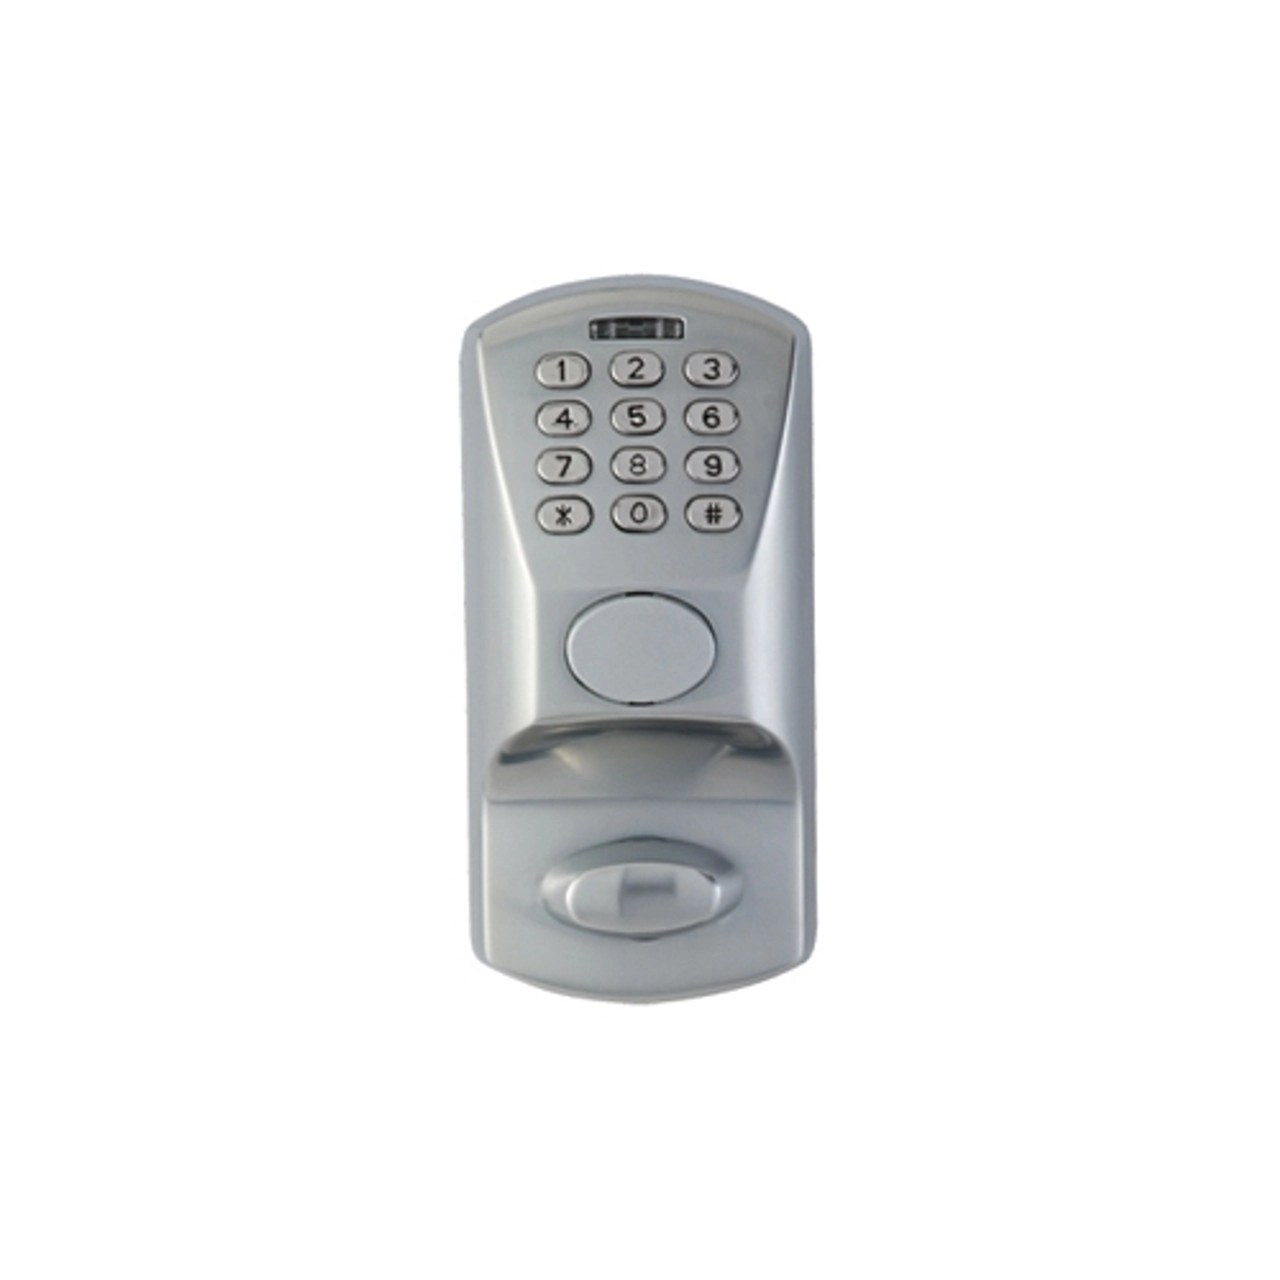 hight resolution of kaba e plex e1502 electronic deadbolt lock with key override kaba power supply wiring diagrams